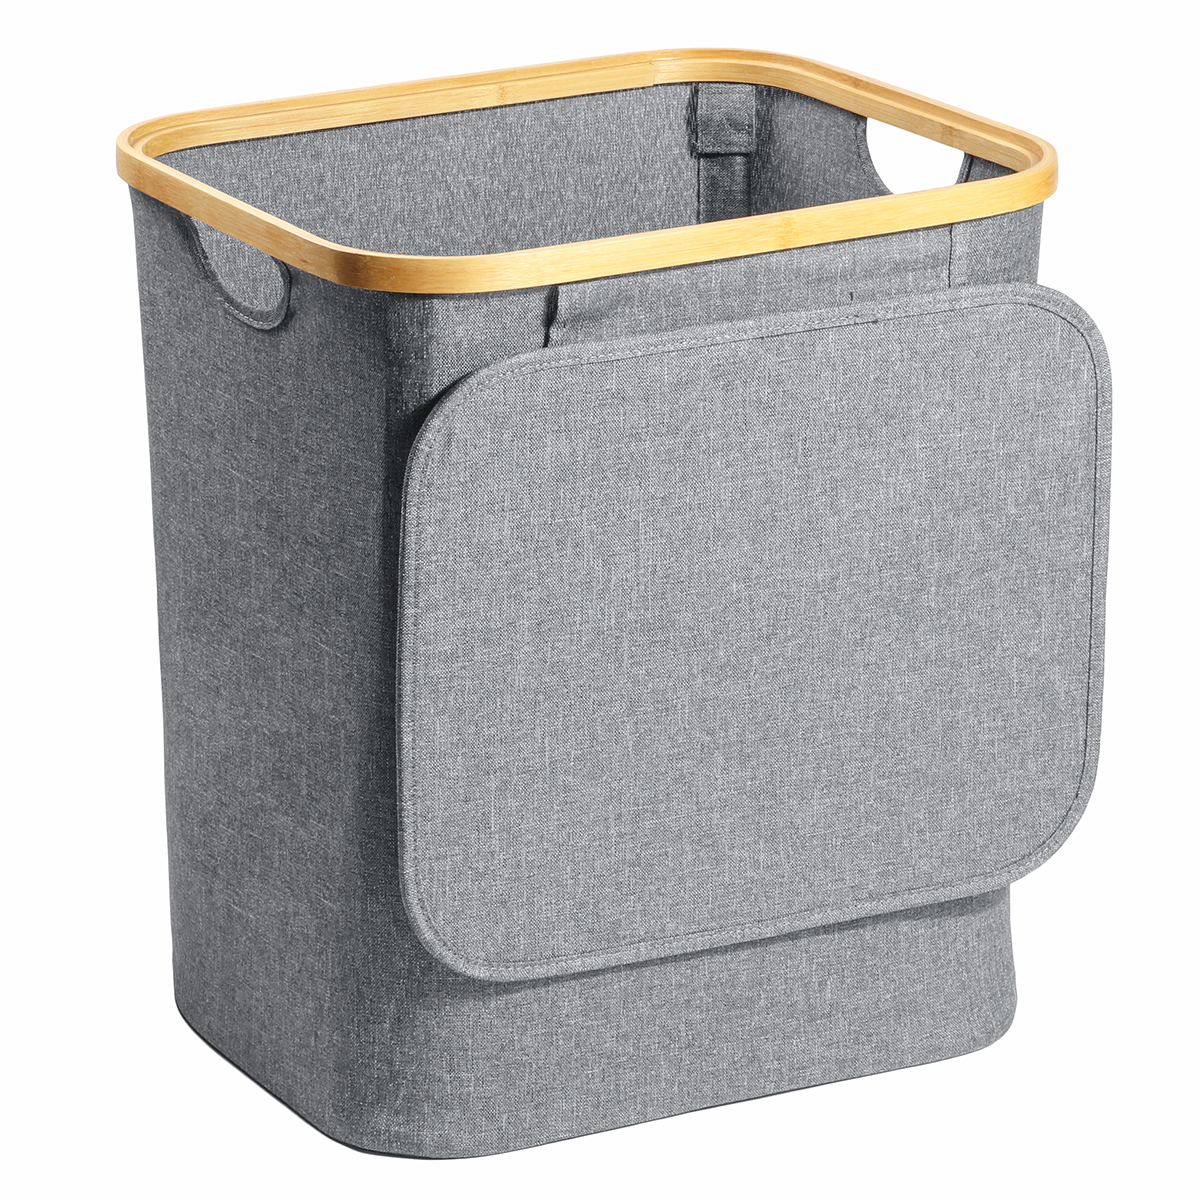 Details about  /Foldable Laundry Hamper Wall Hanging Dirty Clothes Storage Basket Organizer Case